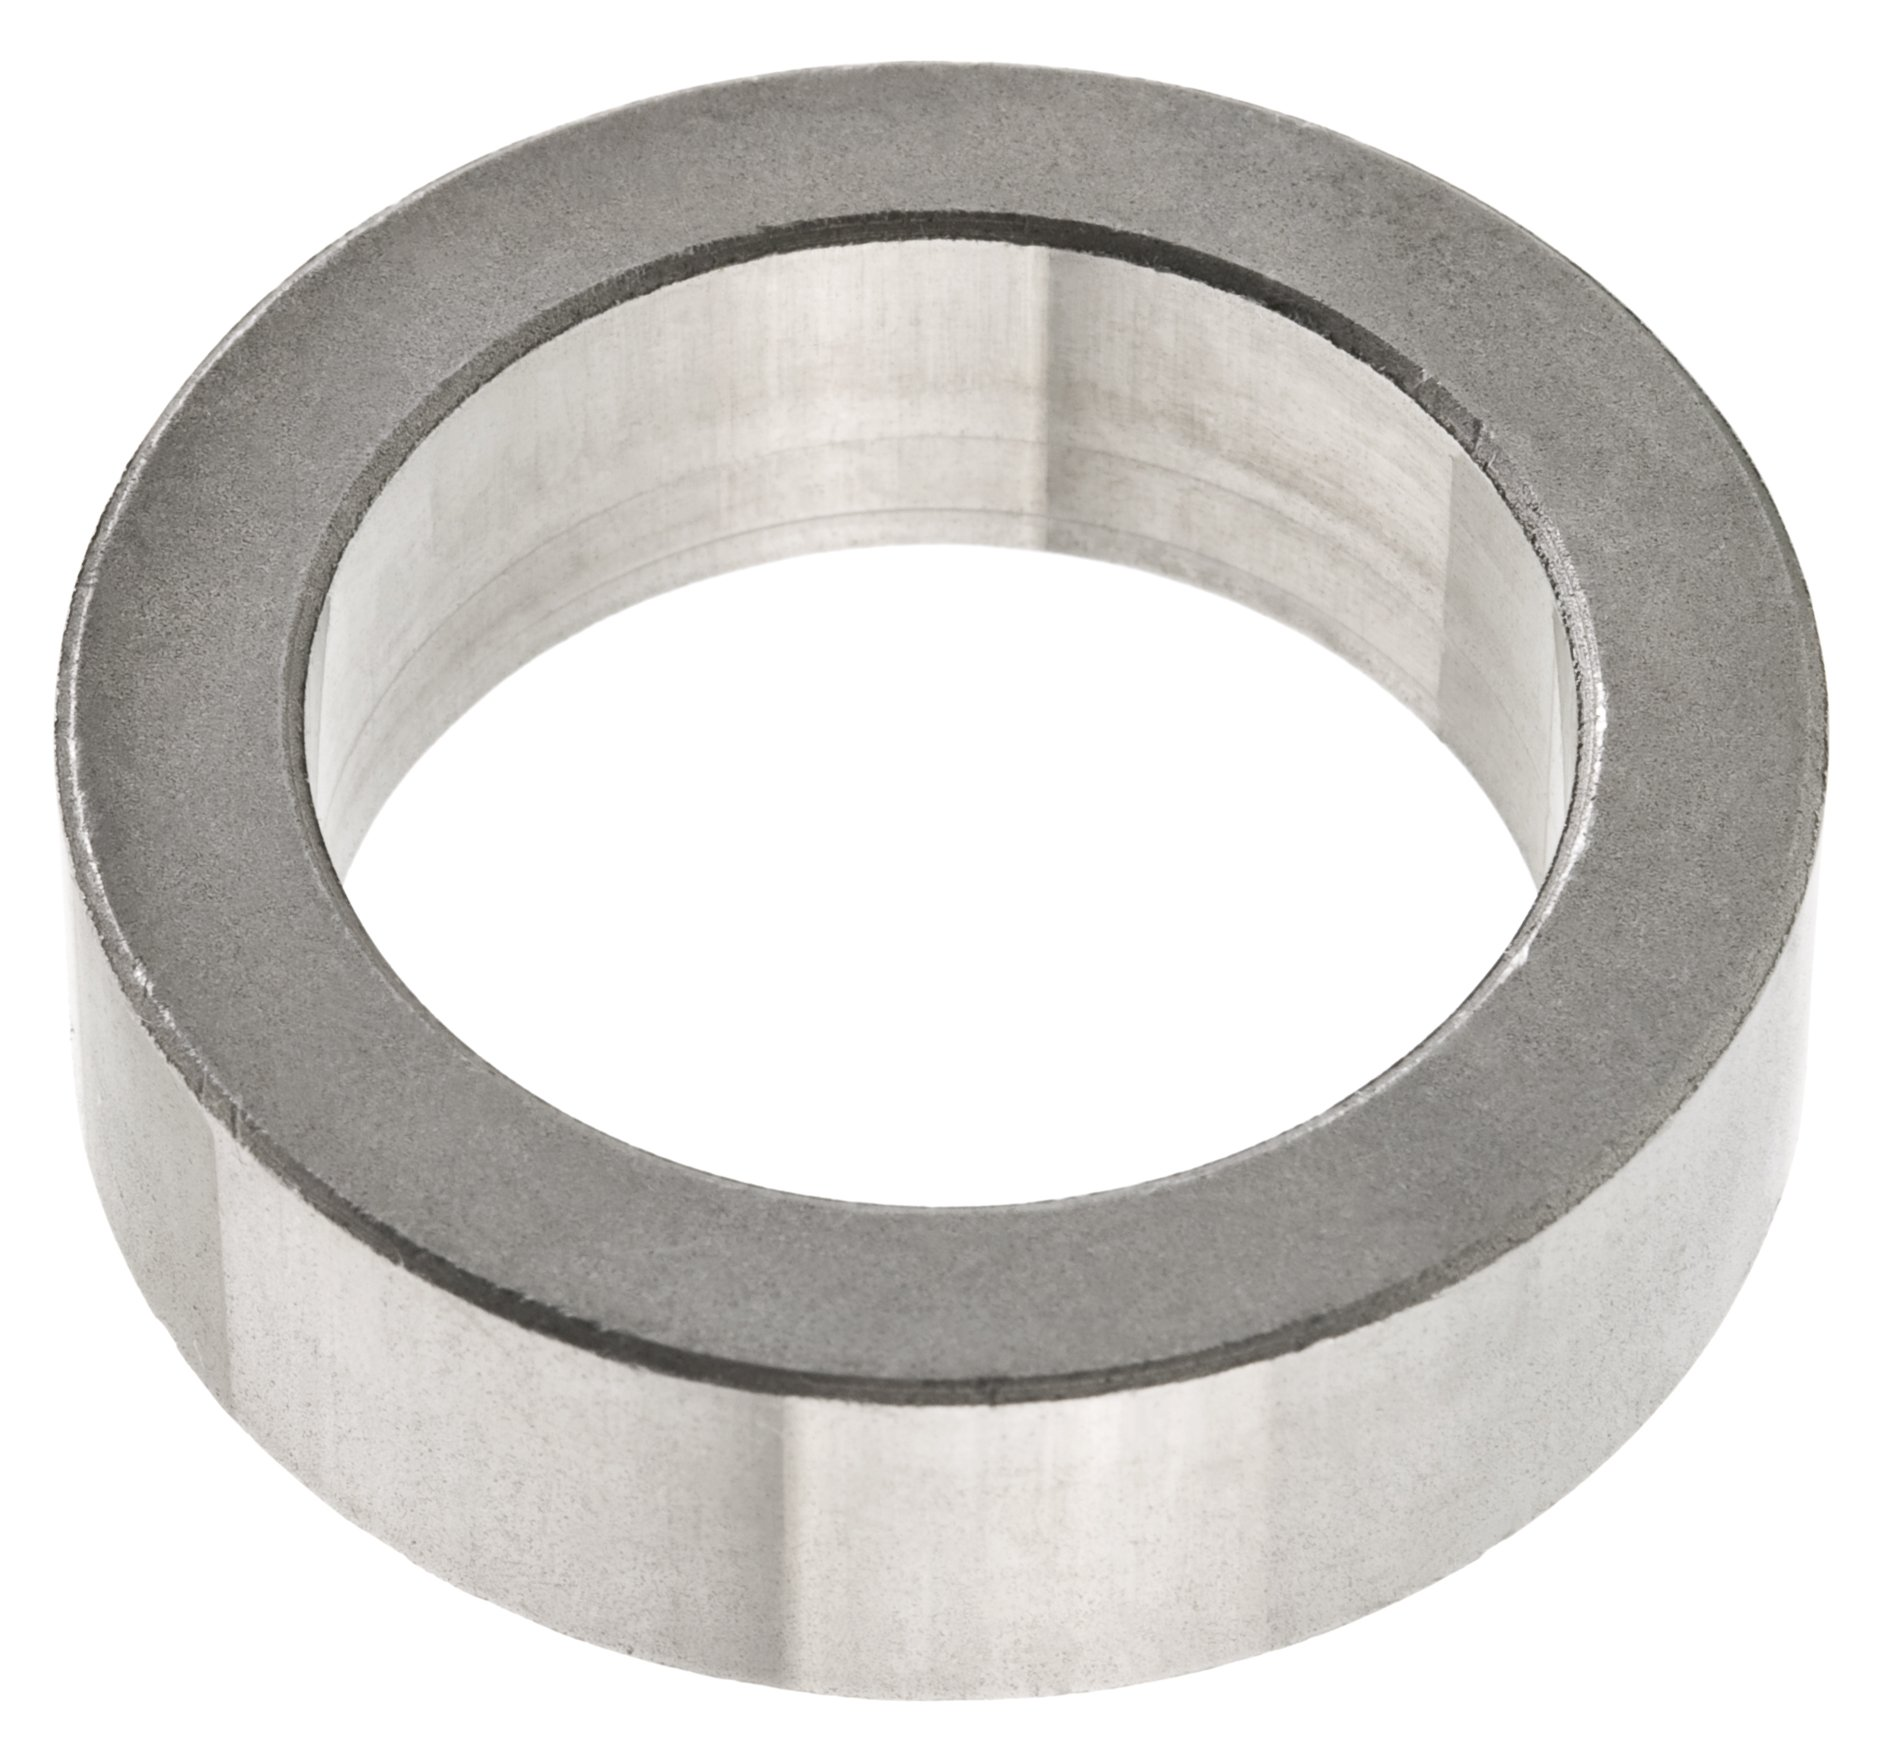 Woodstock W1176 1-1/4 by 1-3/4 by 1/2-Inch Spacer